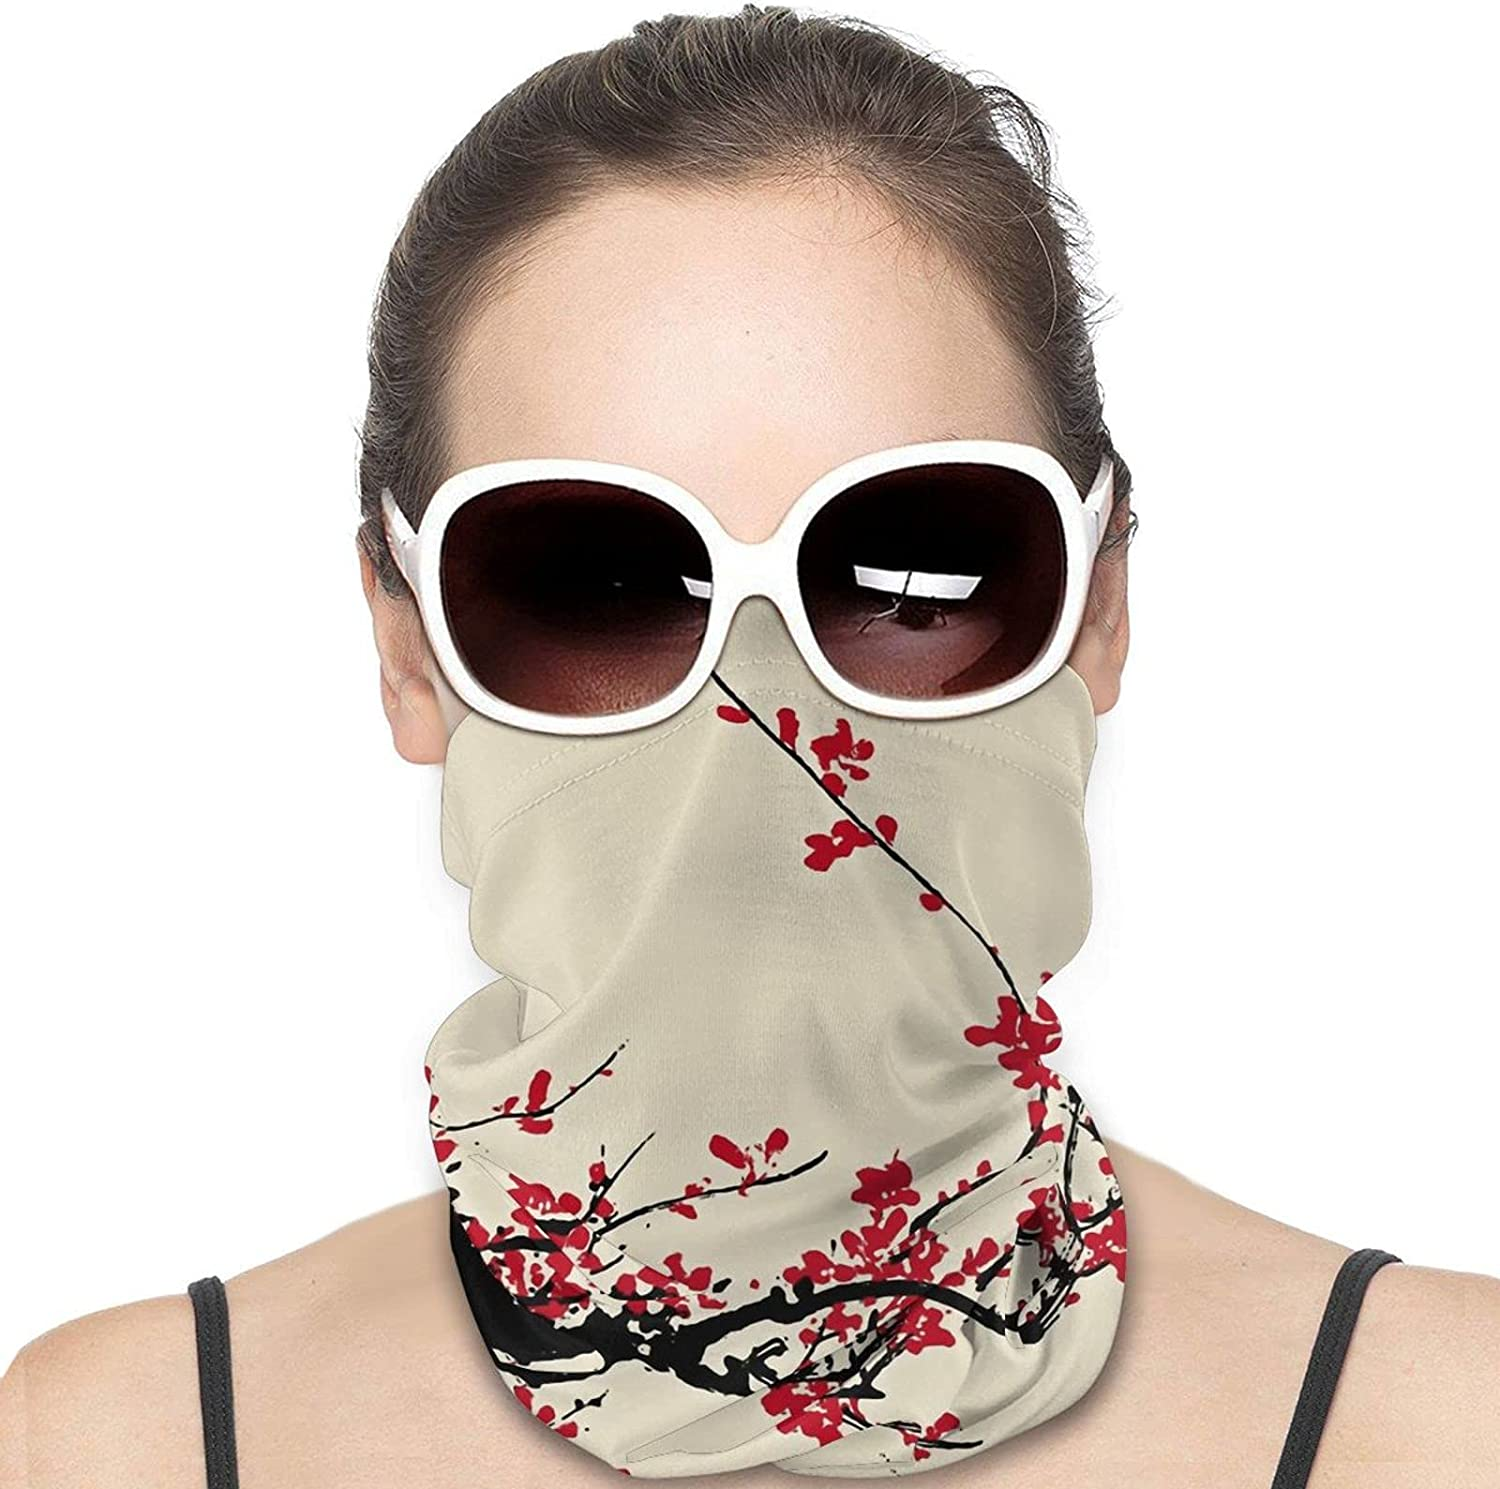 Japanese Floral Cherry Blossom Neck Gaiter Windproof Face Cover Balaclava Outdoors Magic Scarf Headband for Men Women Motorcycling Fishing Running Climbing